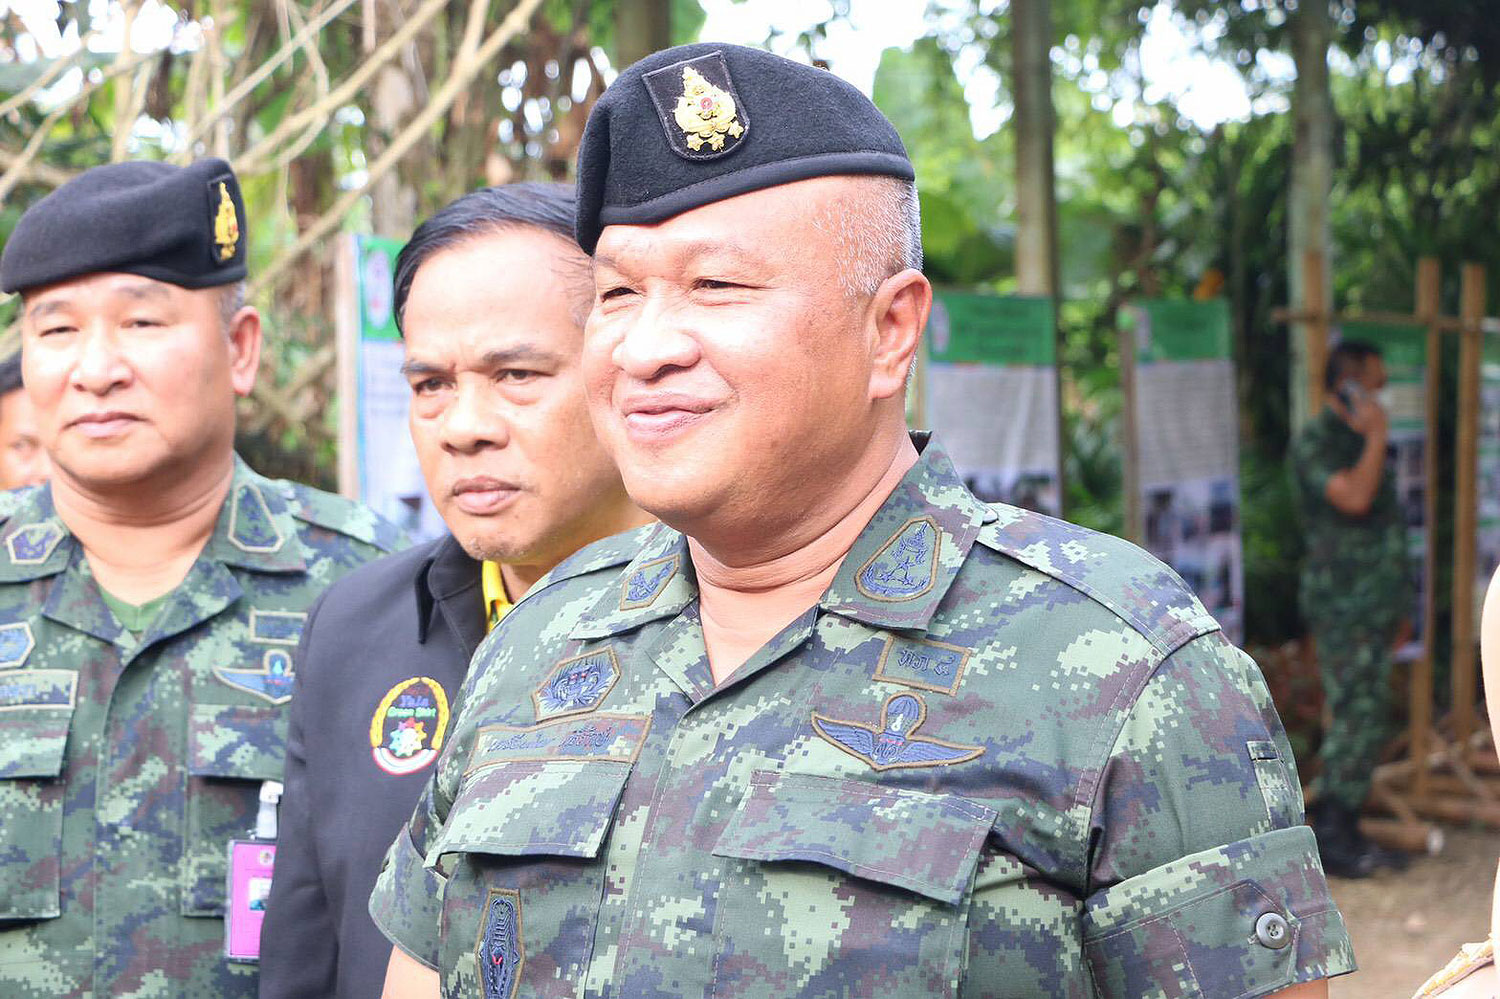 Lt Gen Kriangkrai Srirak, the commander of the 4th Army Region, says the deep South's problems must be solved through talks. He believes Malaysia performs its duty well as a peace talks facilitator.